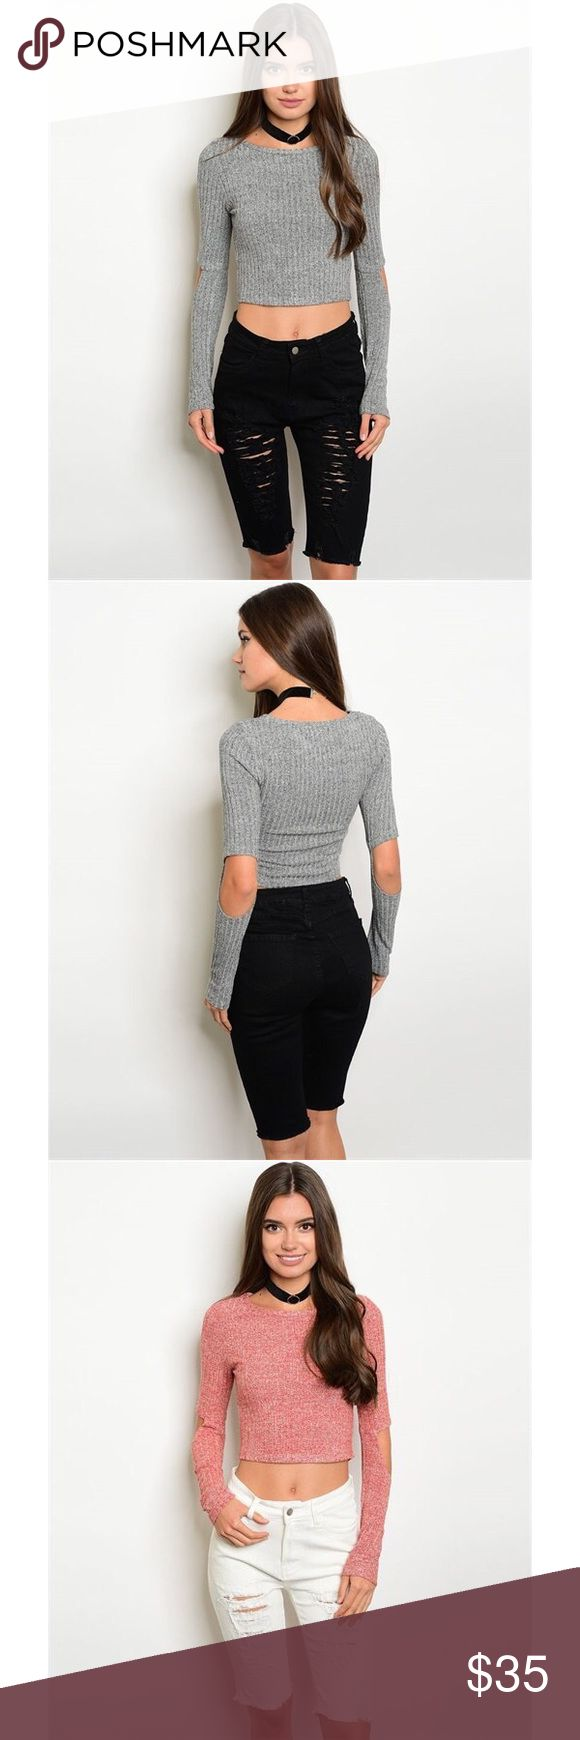 "Gray long sleeve crop top sweater Long sleeve open elbow detail marbled fabric ribbed crop top in heather gray. also available in pink(see separate listing). Fabric Content: 75% POLYESTER 20% RAYON 5% SPANDEX. measurements for a size small: L: 17"" B: 26"" W: 26"". ONLY CONSIDERING OFFERS THROUGH THE ""OFFER"" BUTTON. No trades, no off App transactions. Any questions can be addressed below. Available: 2 Small, 1 Medium, 2 Large Tops Crop Tops"